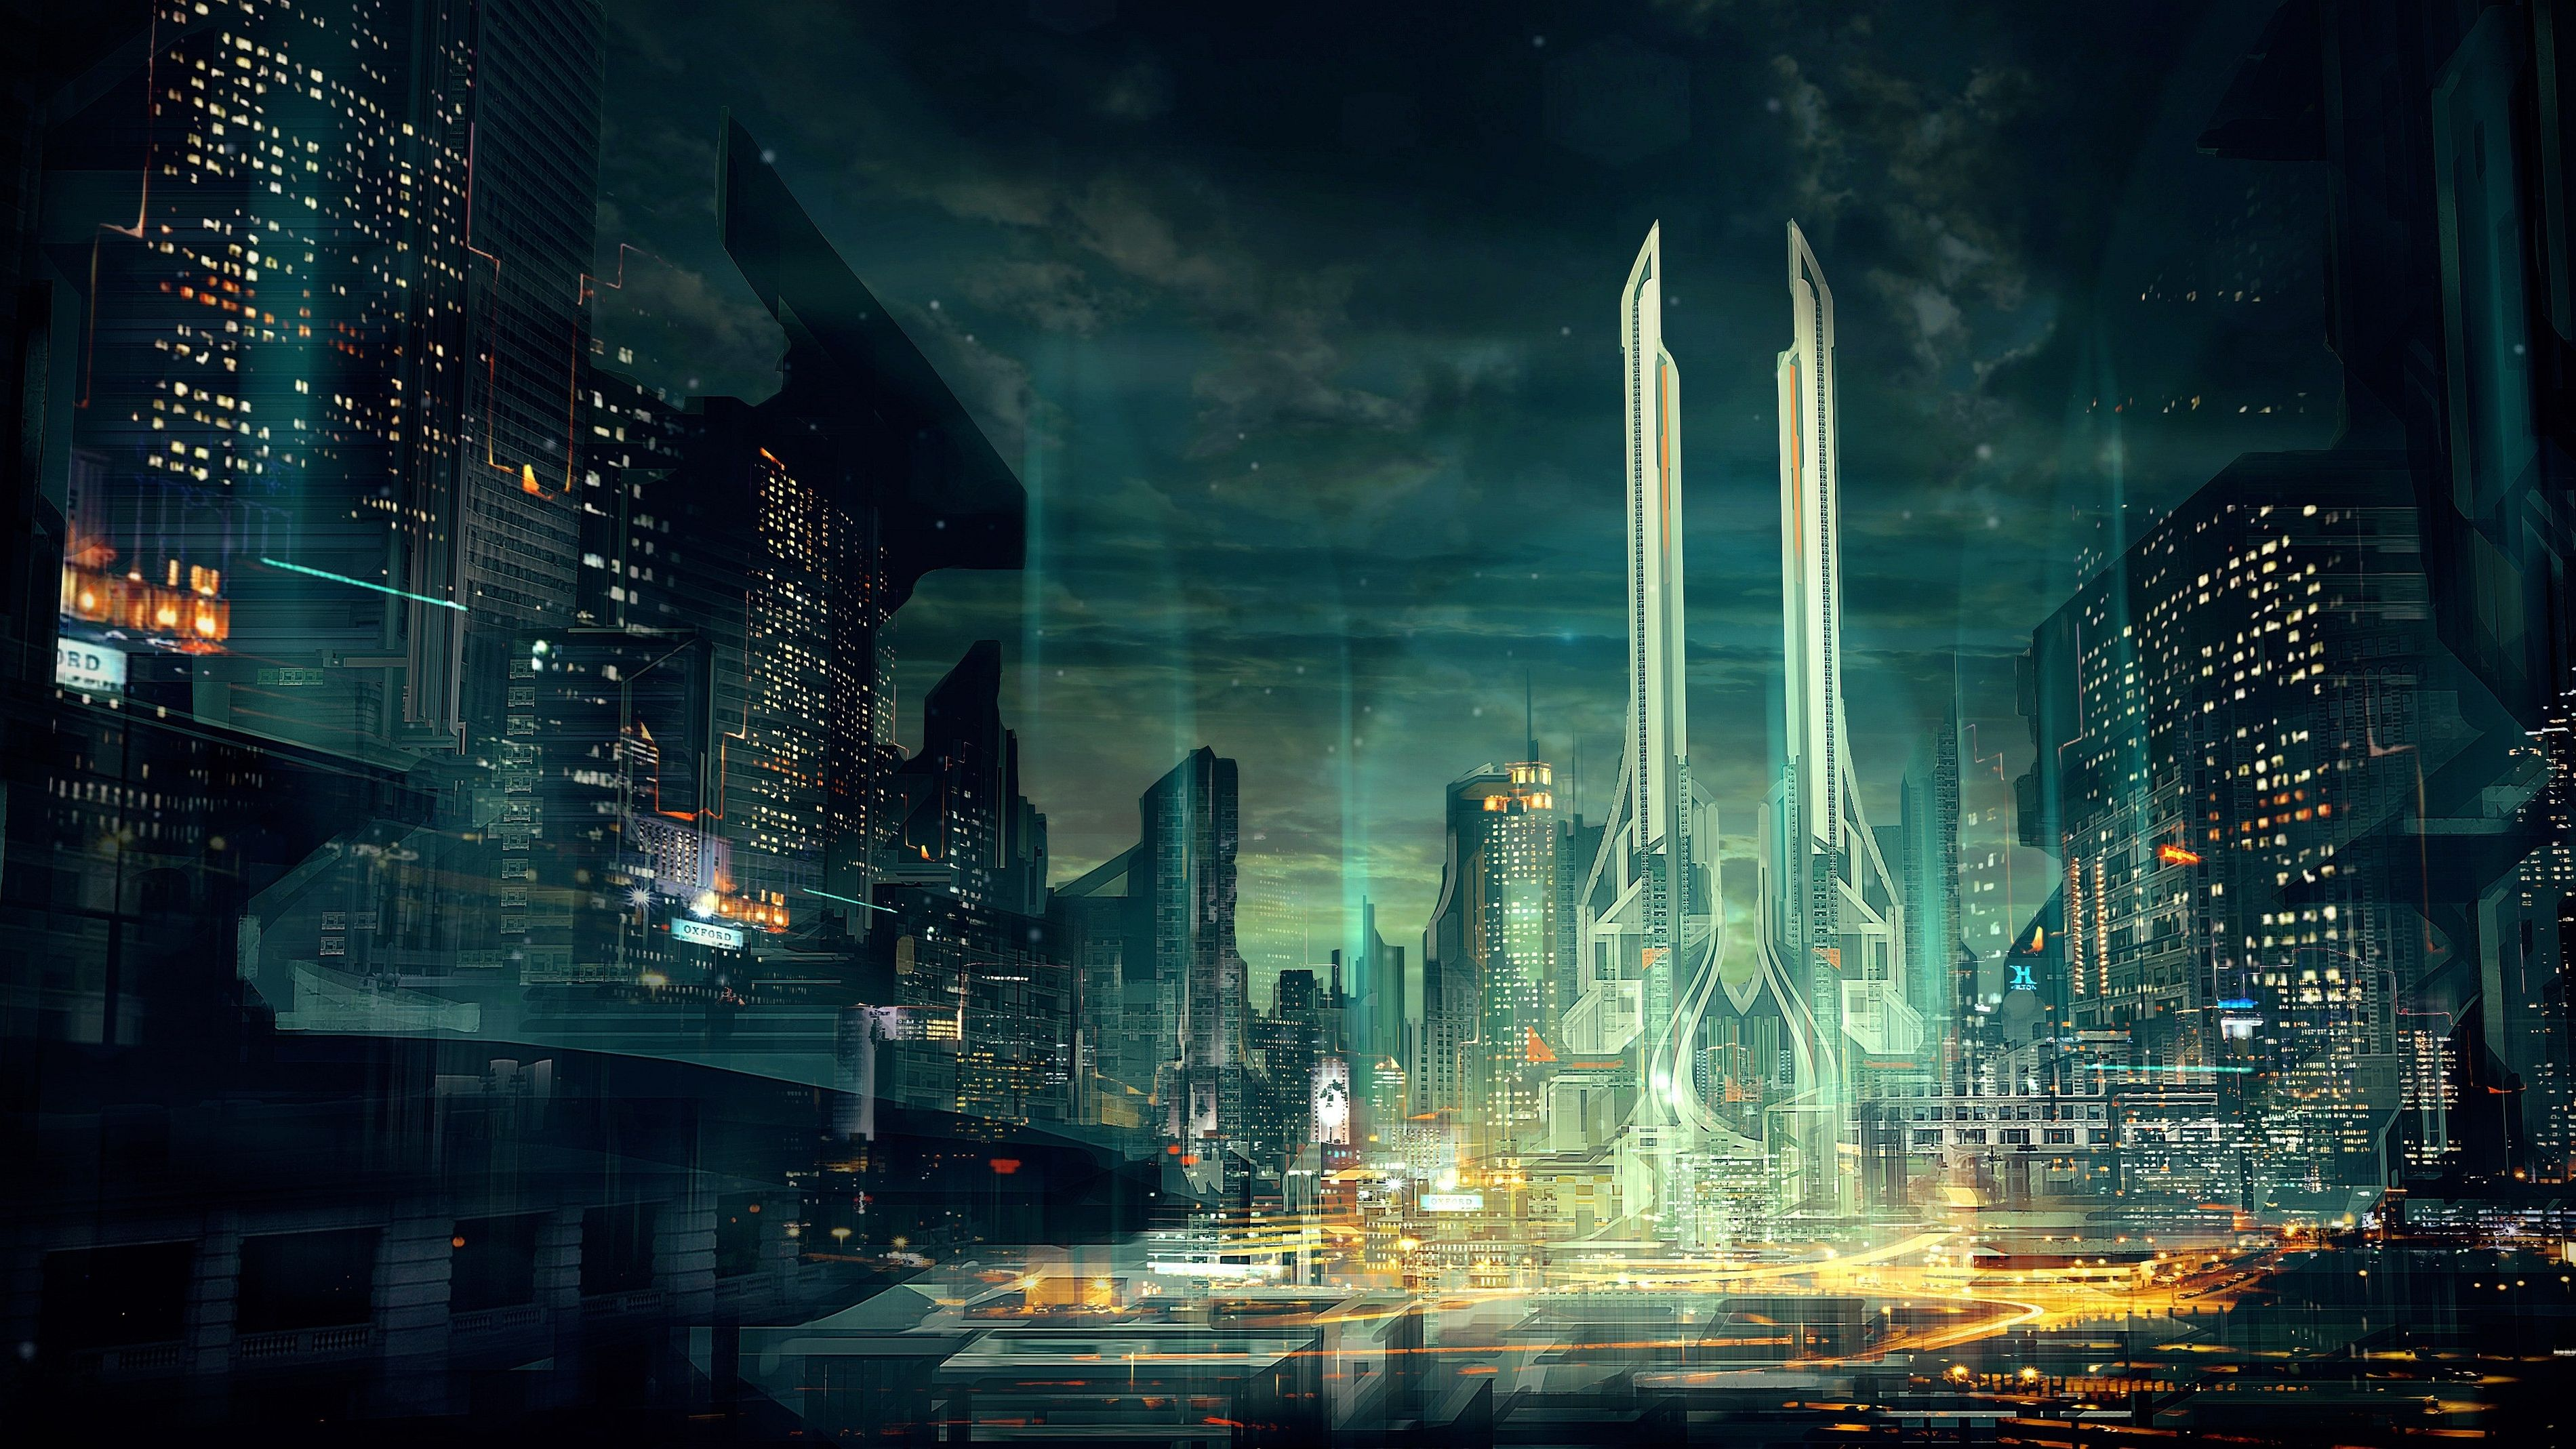 Sci Fi City Wallpapers Top Free Sci Fi City Backgrounds Wallpaperaccess